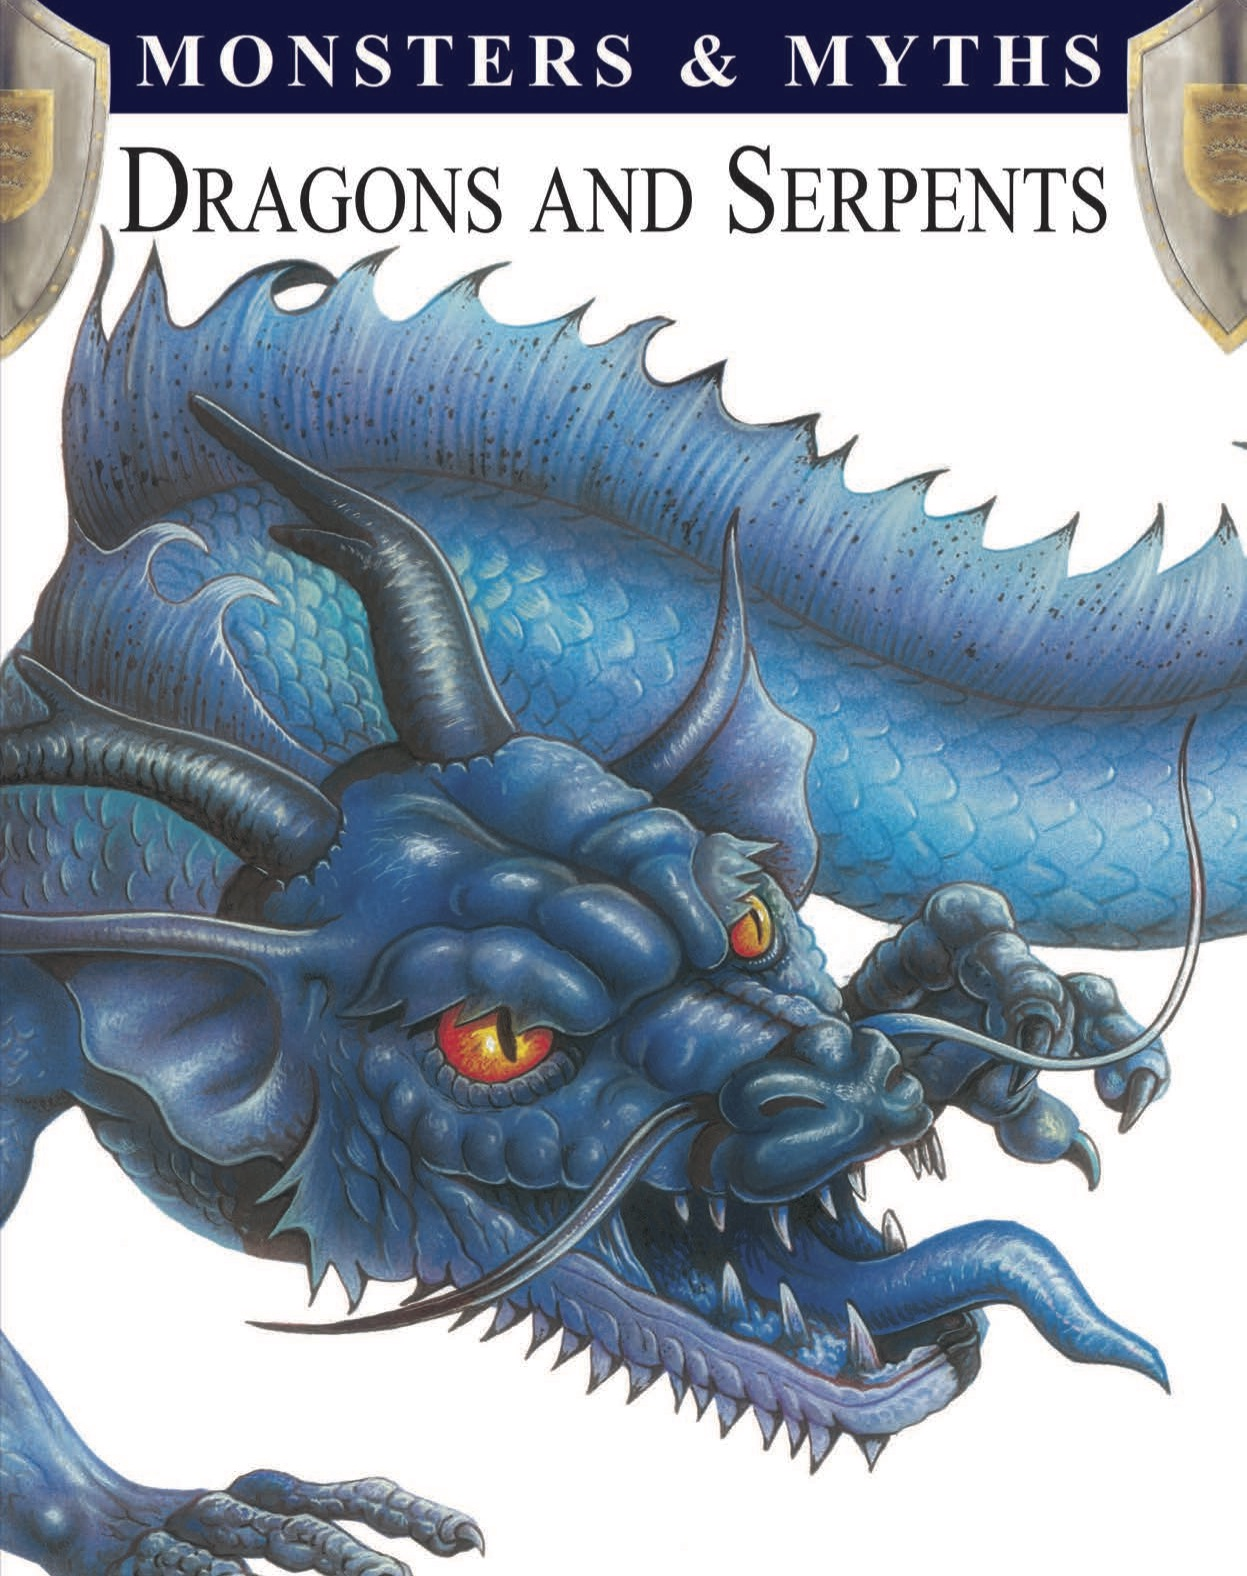 Monsters and Myths: Dragons and Serpents